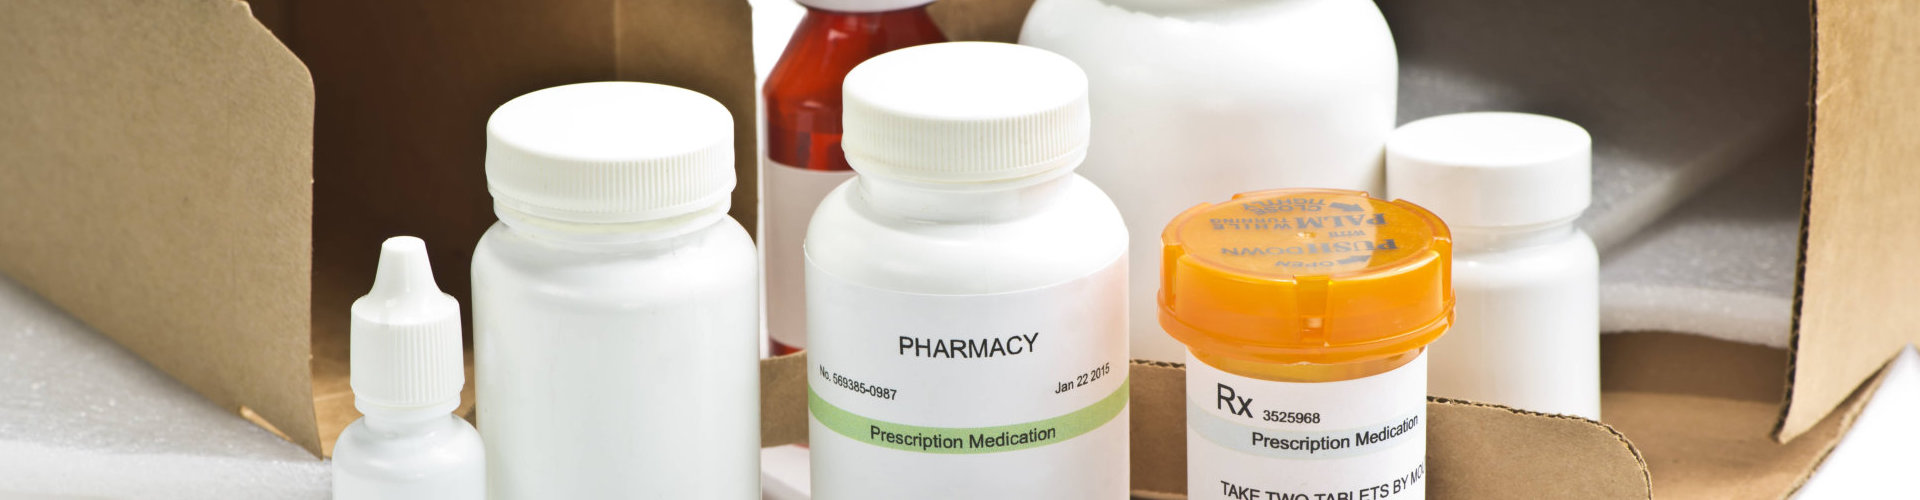 opened package of medicine